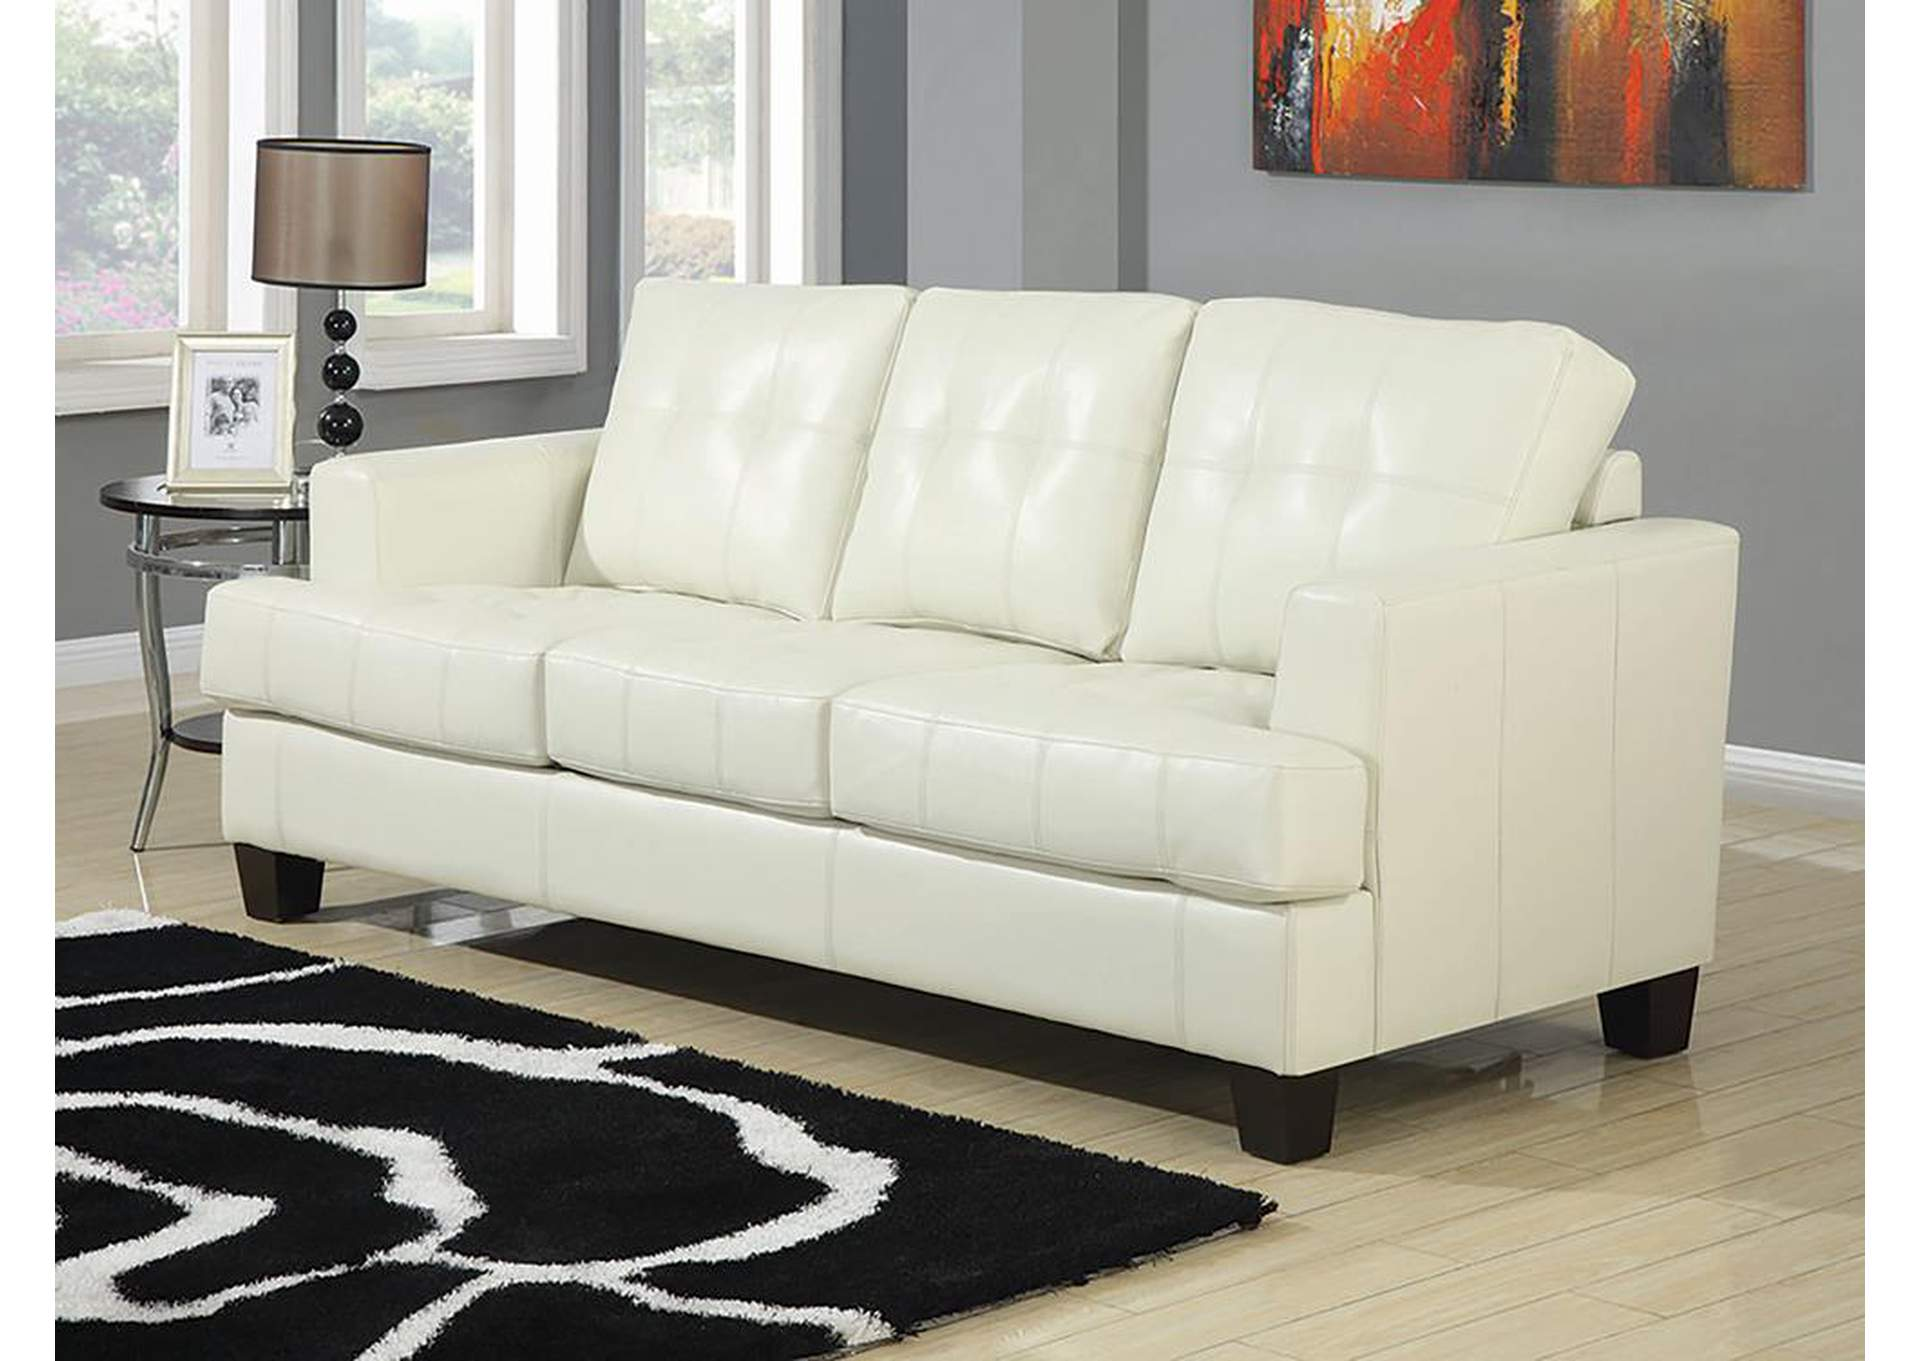 Samuel Cream Sleeper Sofa,Coaster Furniture